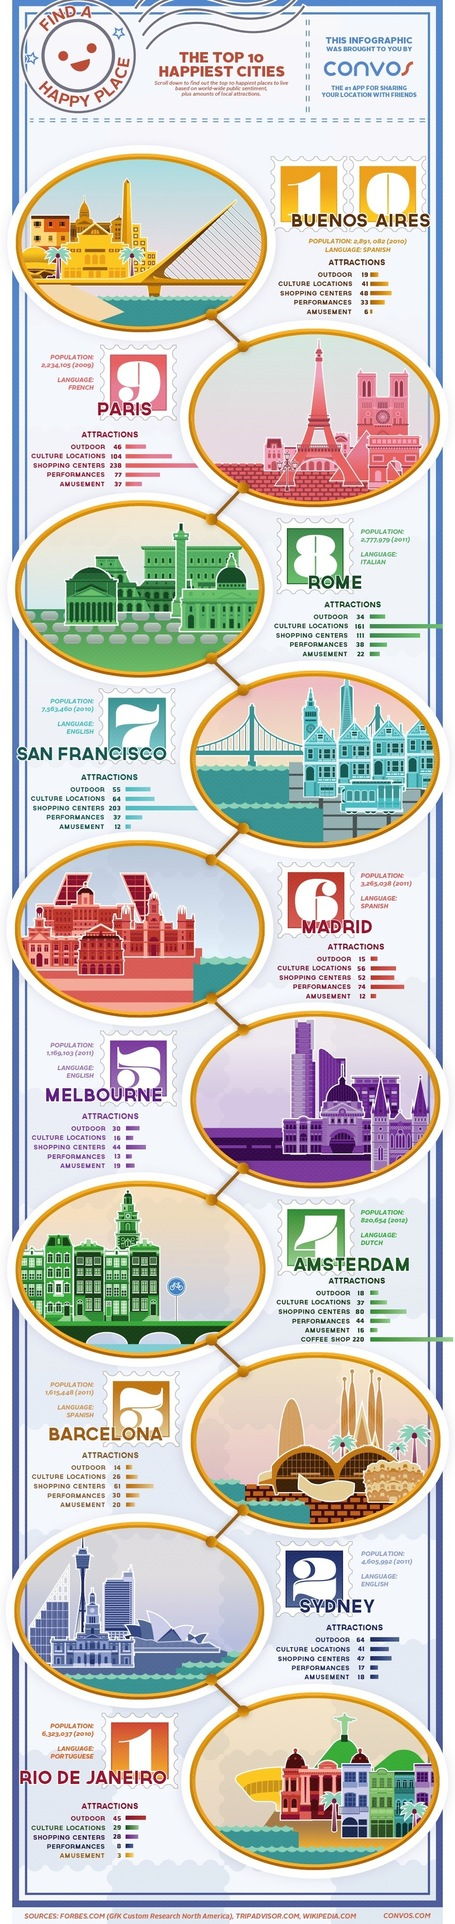 The Happiest Cities in the World [Infographic] | Développement durable et efficacité énergétique | Scoop.it